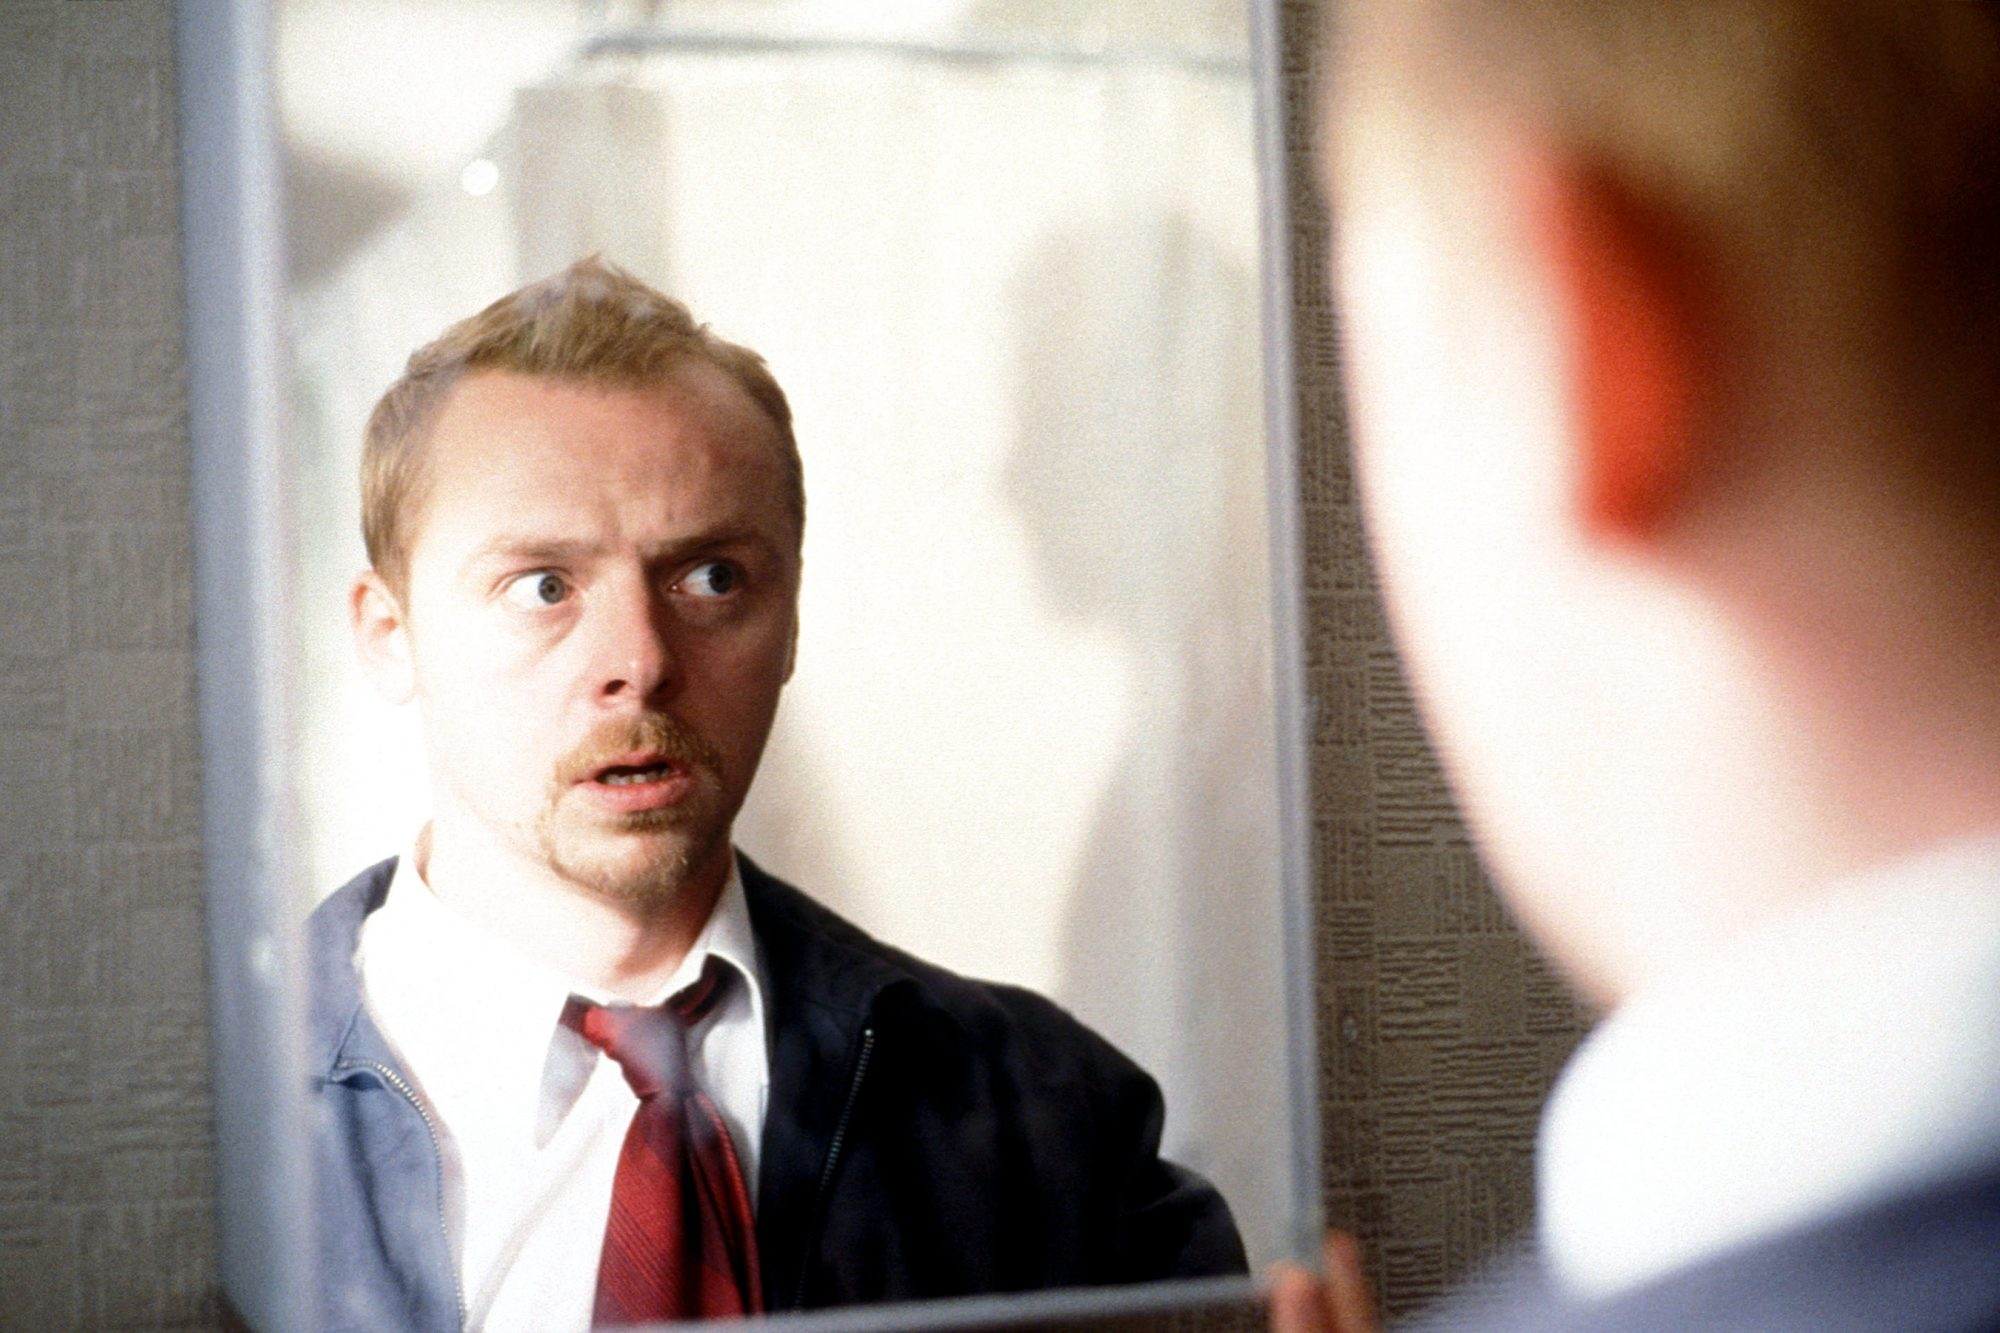 SHAUN OF THE DEAD, Simon Pegg, 2004, (c) Rogue Pictures/courtesy Everett Collection